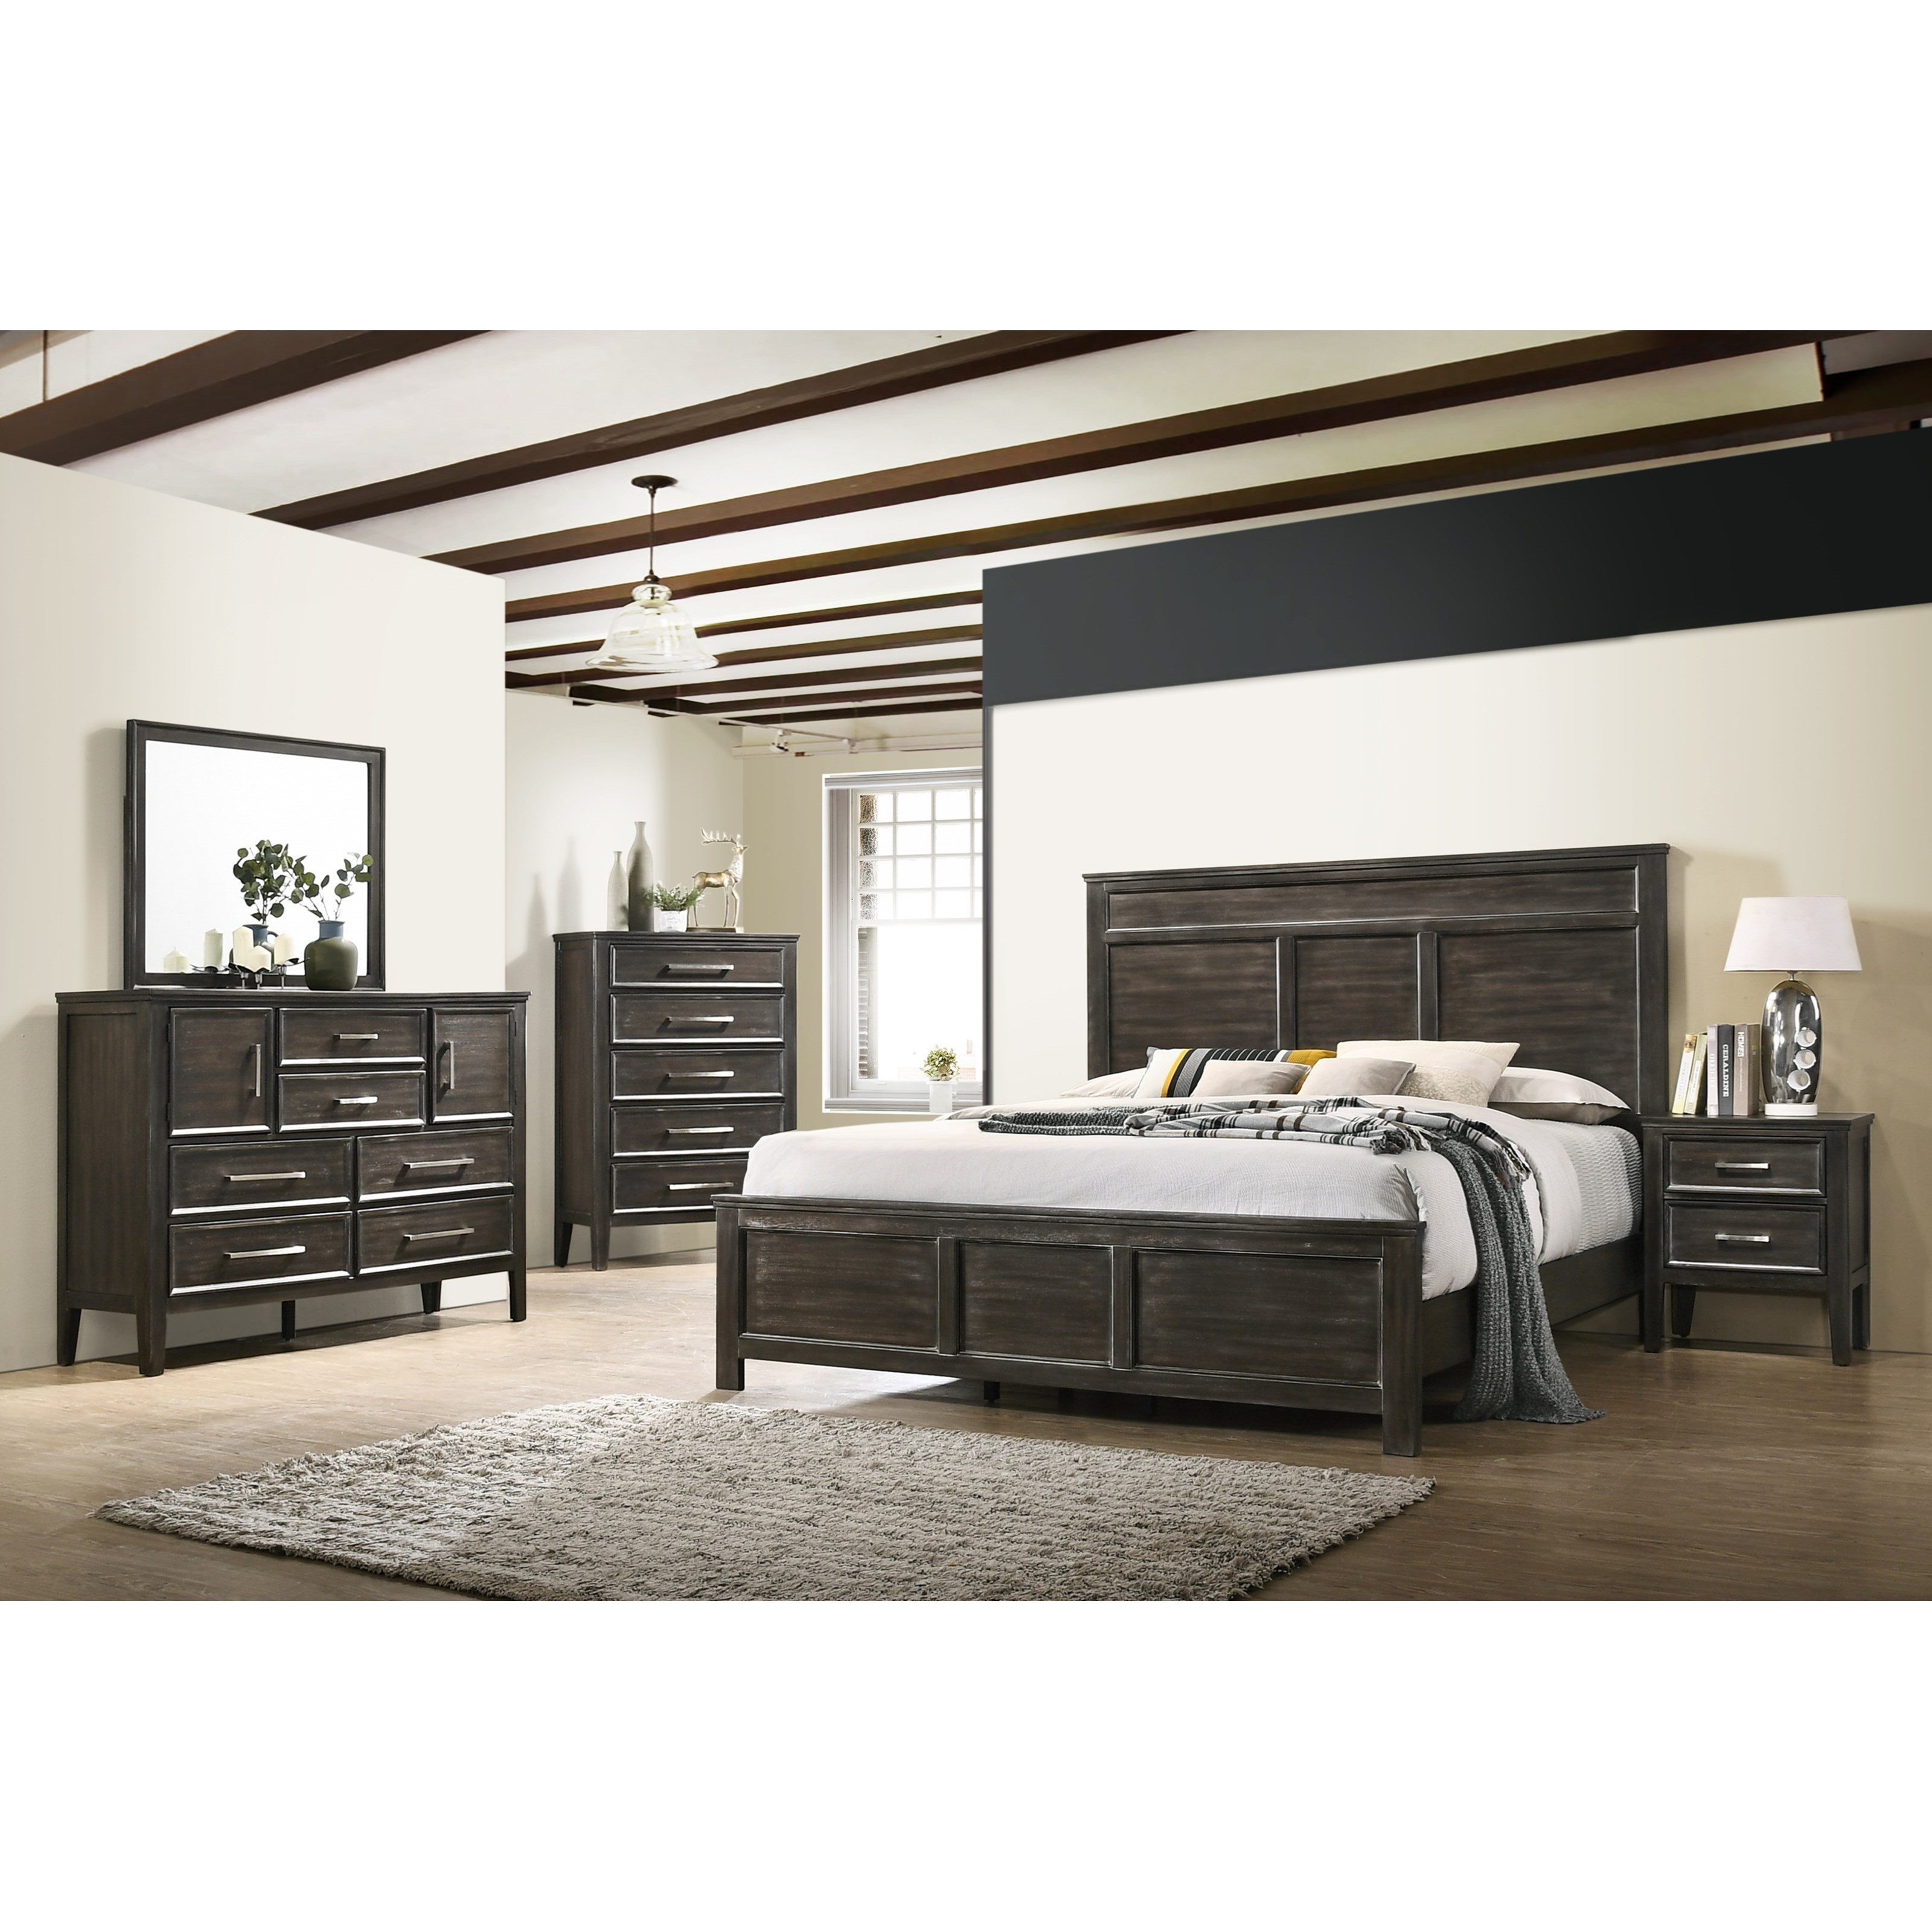 Andover Twin Bedroom Group by New Classic at Value City Furniture